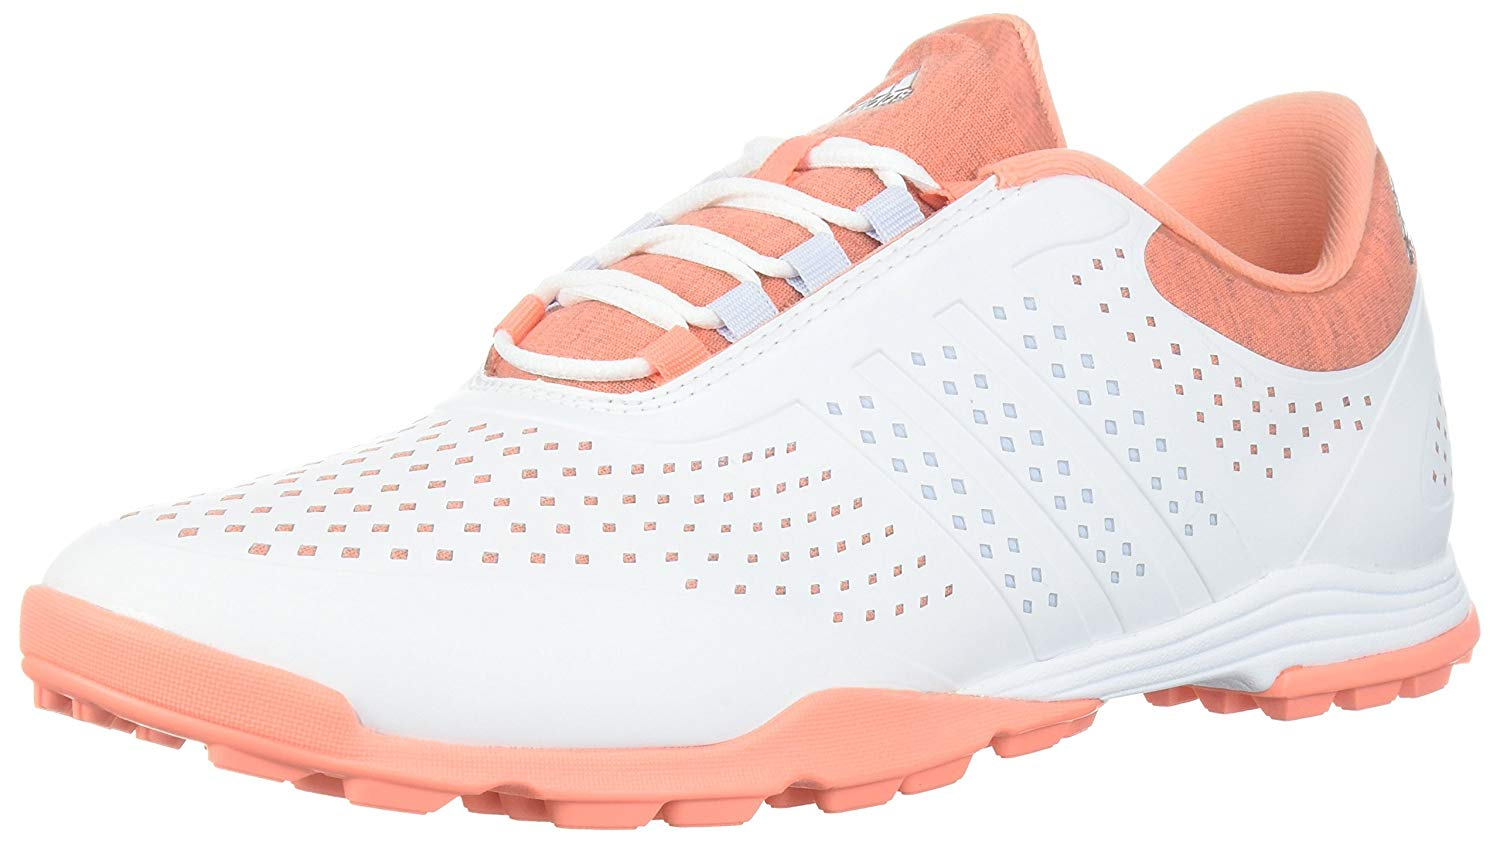 reputable site d1d2a 9ef65 ... Adidas Womens Adipure Sport Golf Shoes